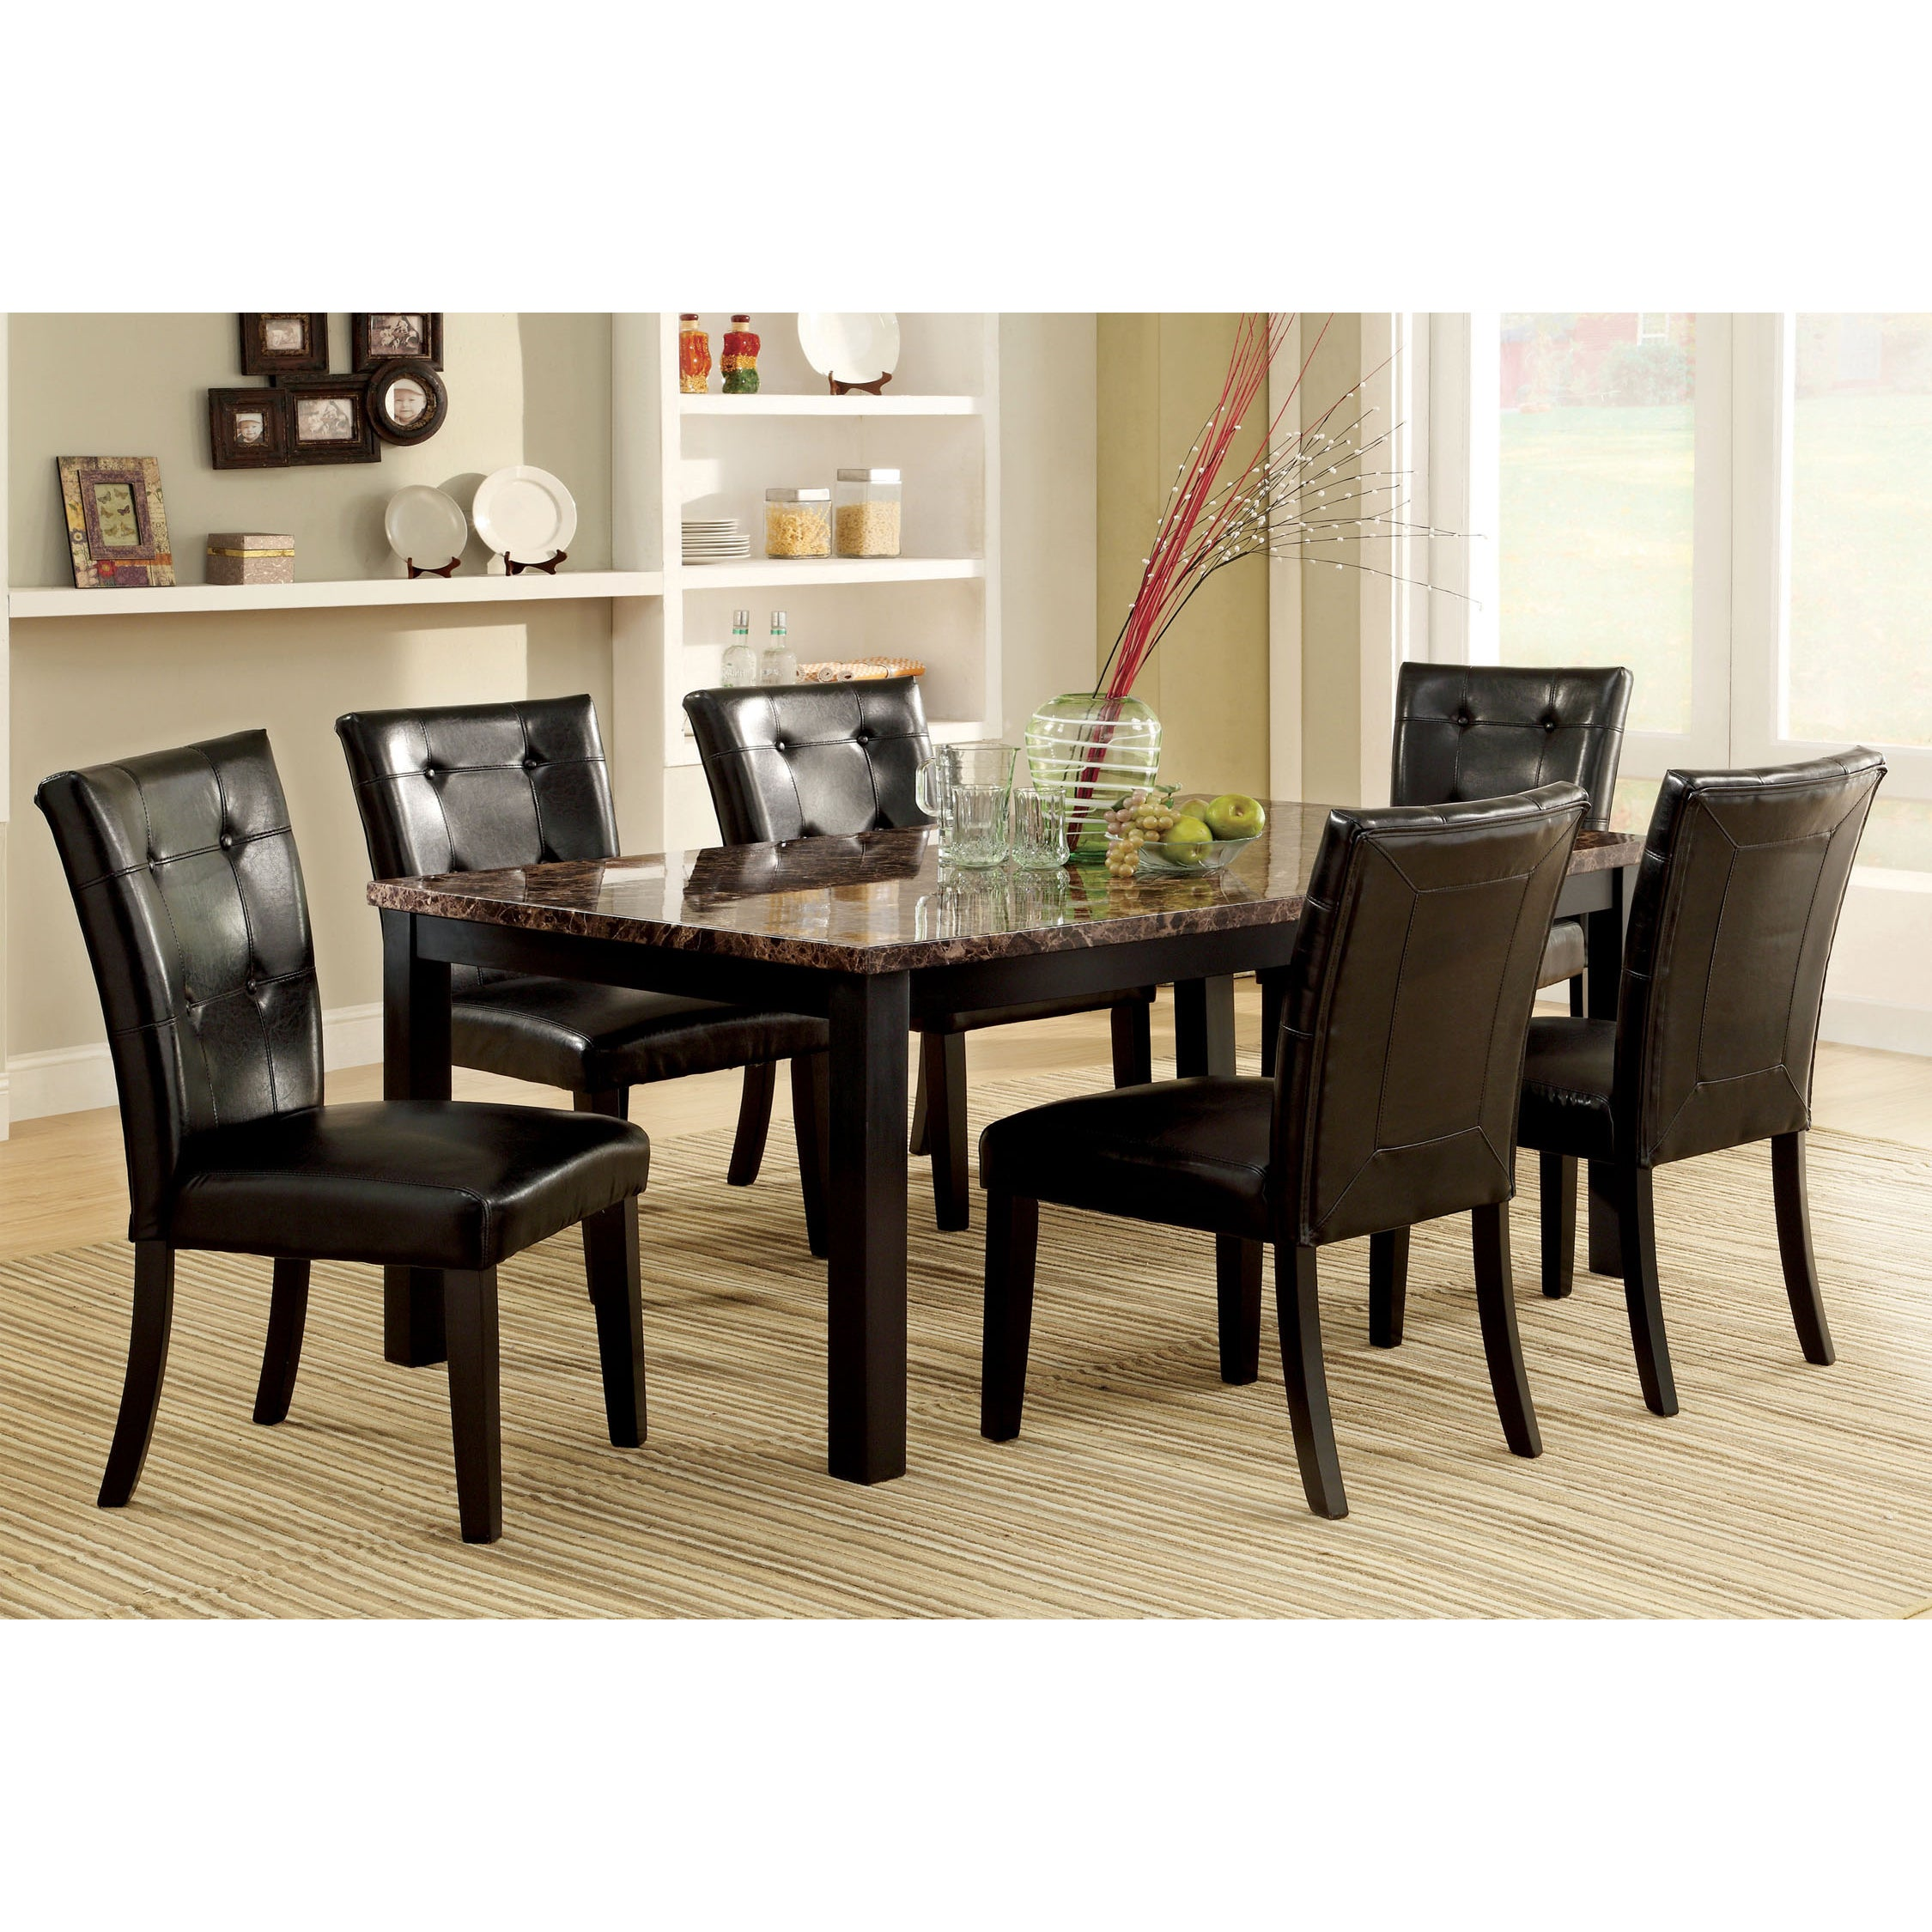 Furniture of America Perthien 7-Piece Faux Marble Dining ...